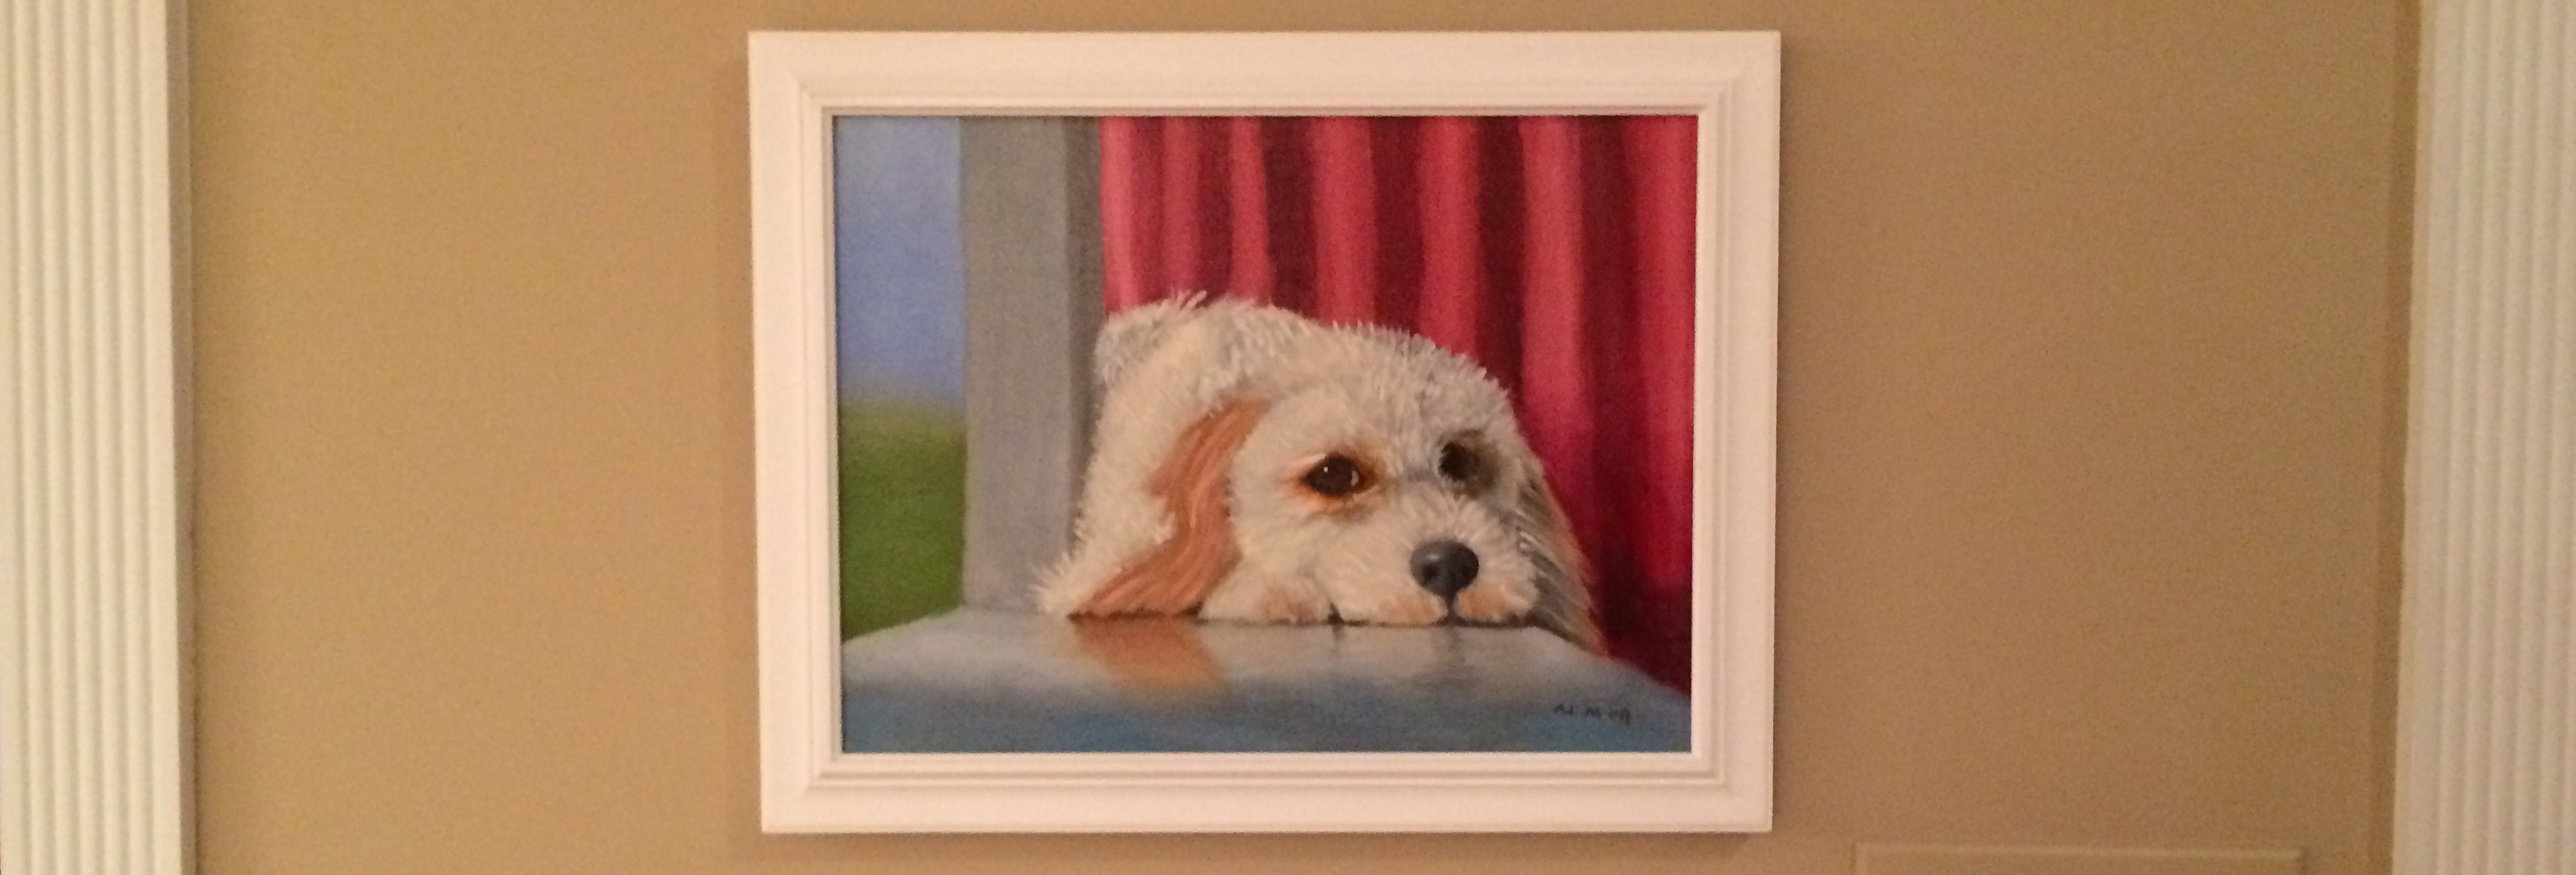 Painting of our dog Peanut